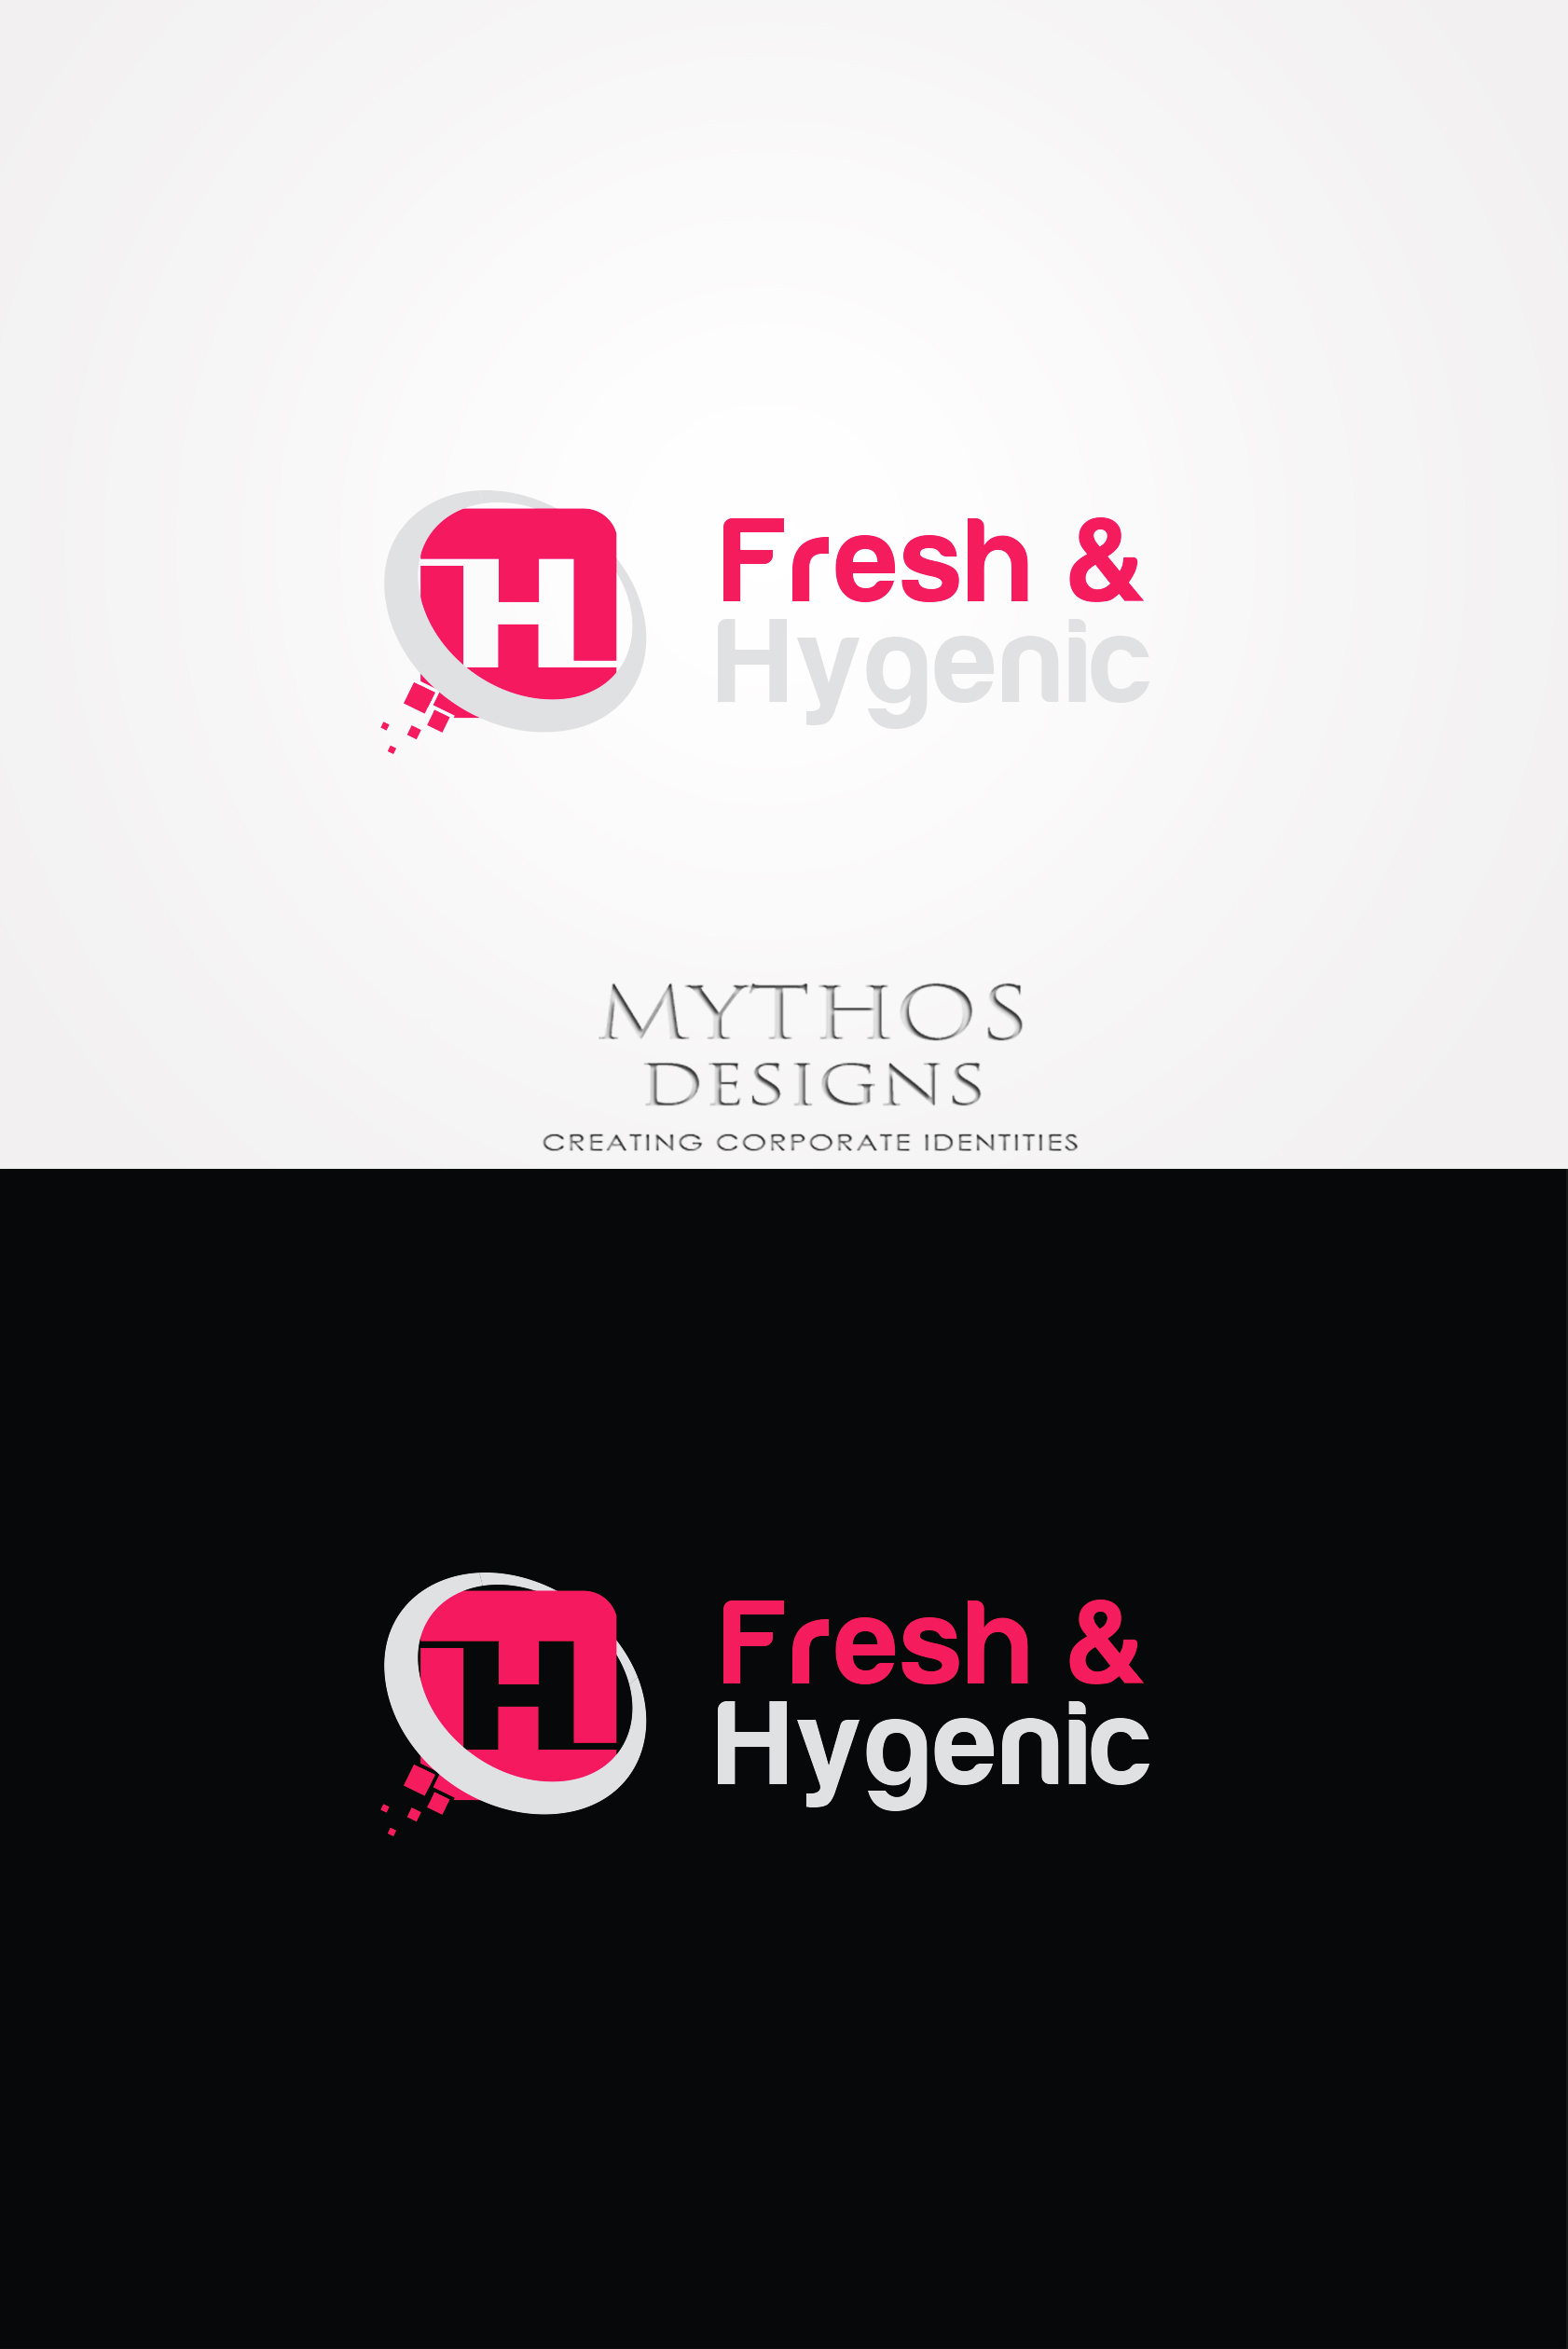 Logo Design by Mythos Designs - Entry No. 147 in the Logo Design Contest Fun Logo Design for Fresh & Hygenic.